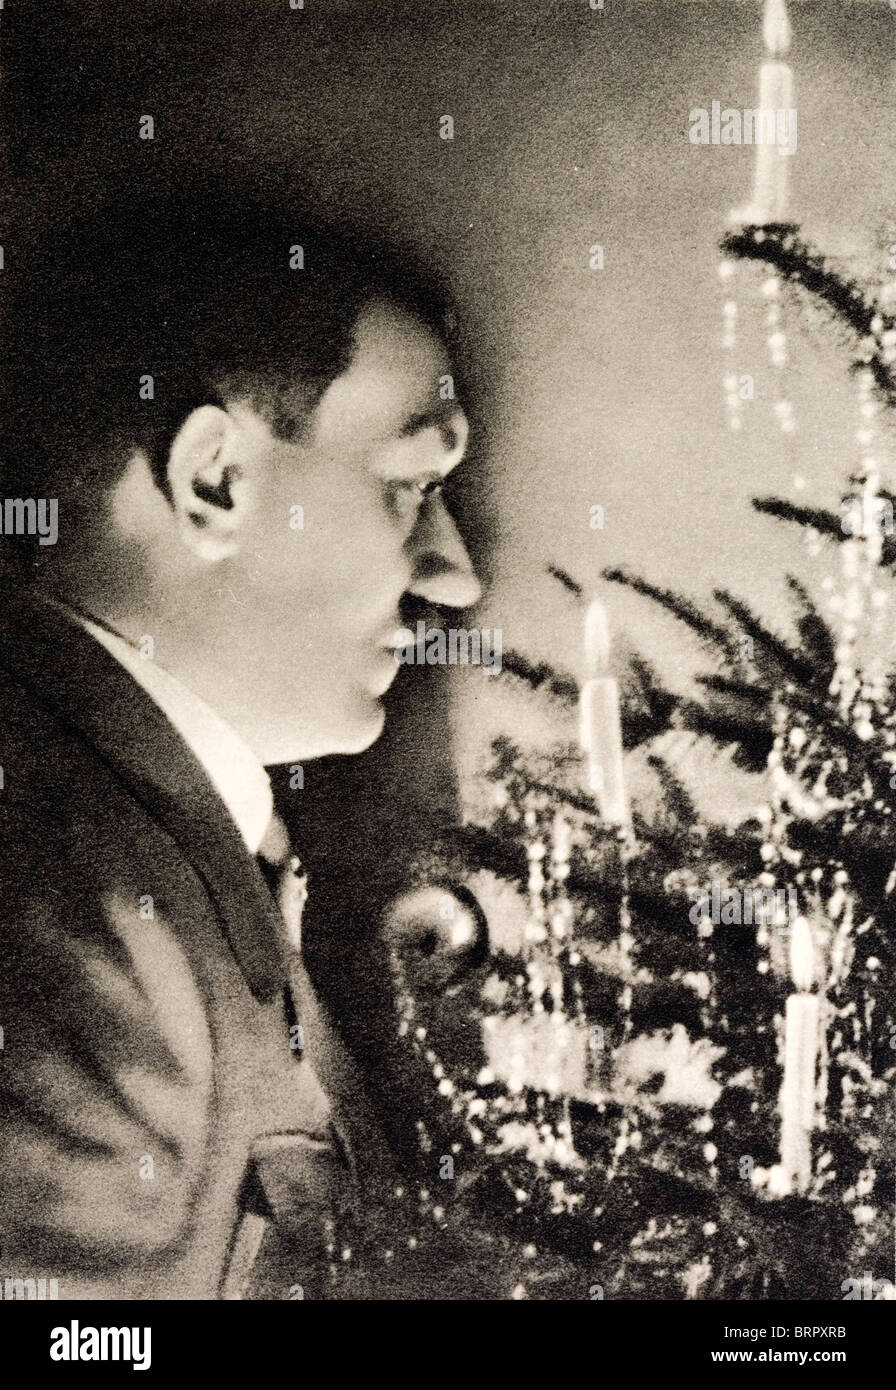 German Nazi picture showing a 'German Christmas'. Shows Adolf Hitler looking into a Christmas tree with - Stock Image